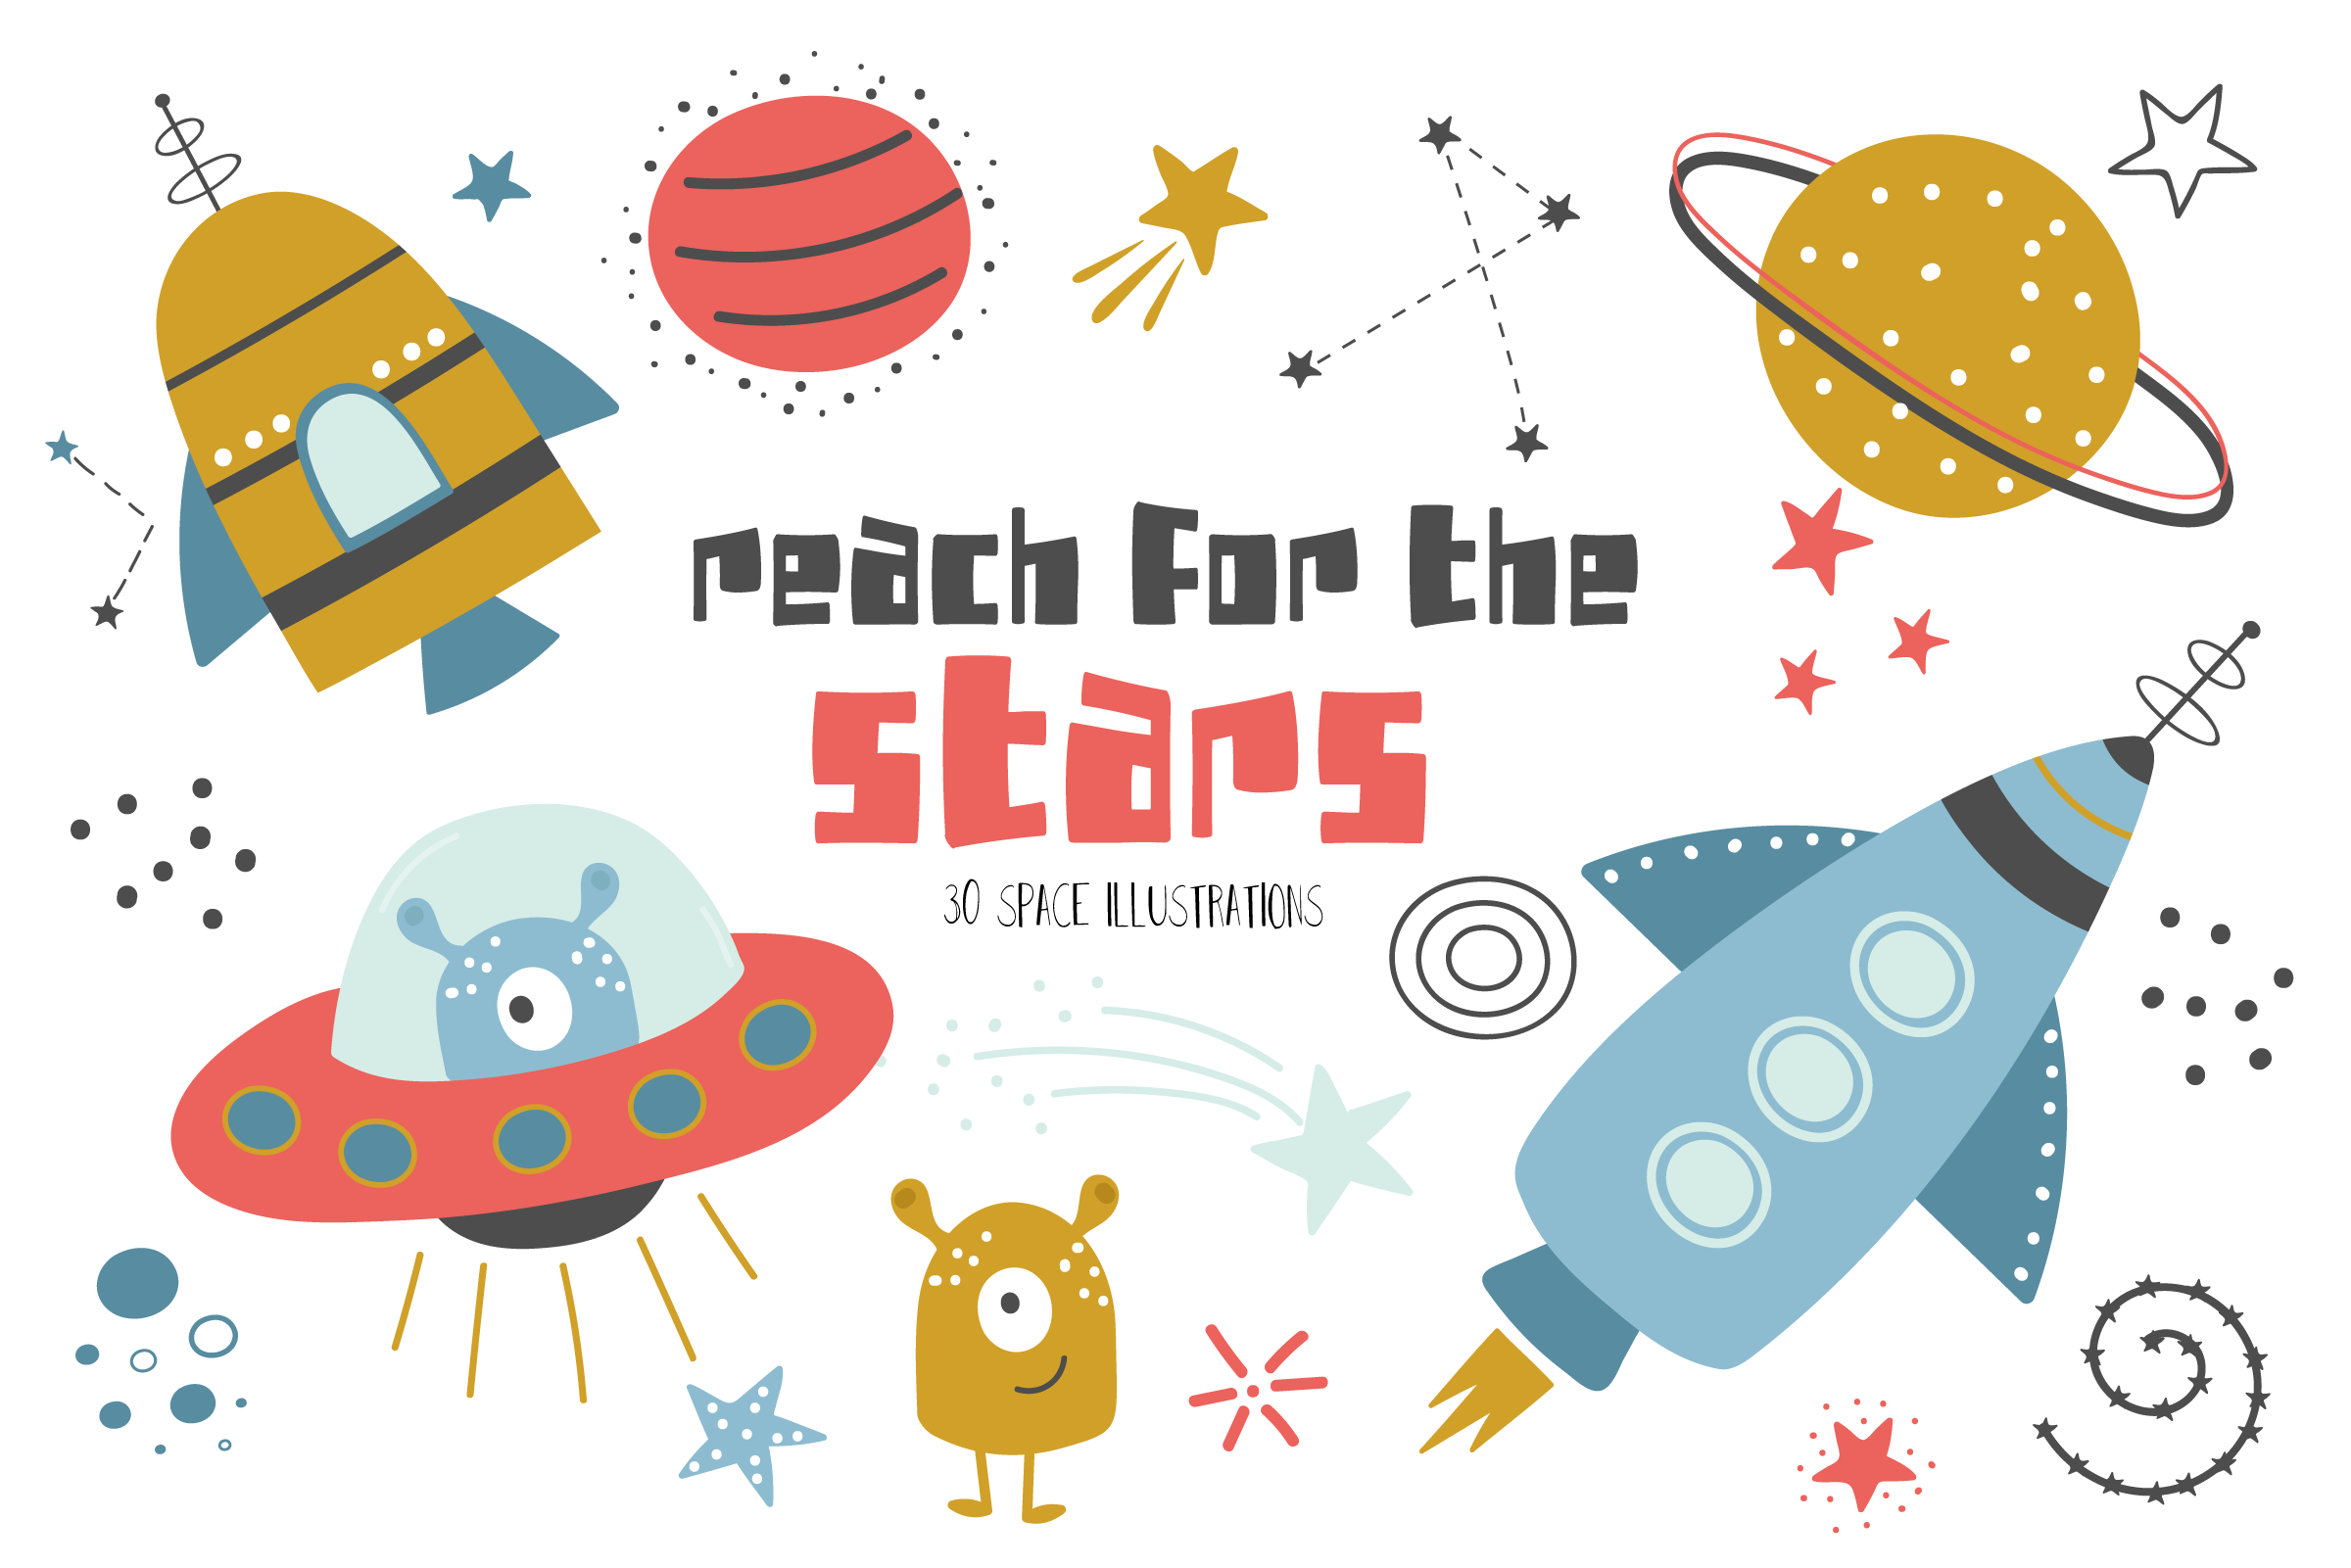 Download Free Reach For The Stars Graphic By Poppymoondesign Creative Fabrica for Cricut Explore, Silhouette and other cutting machines.